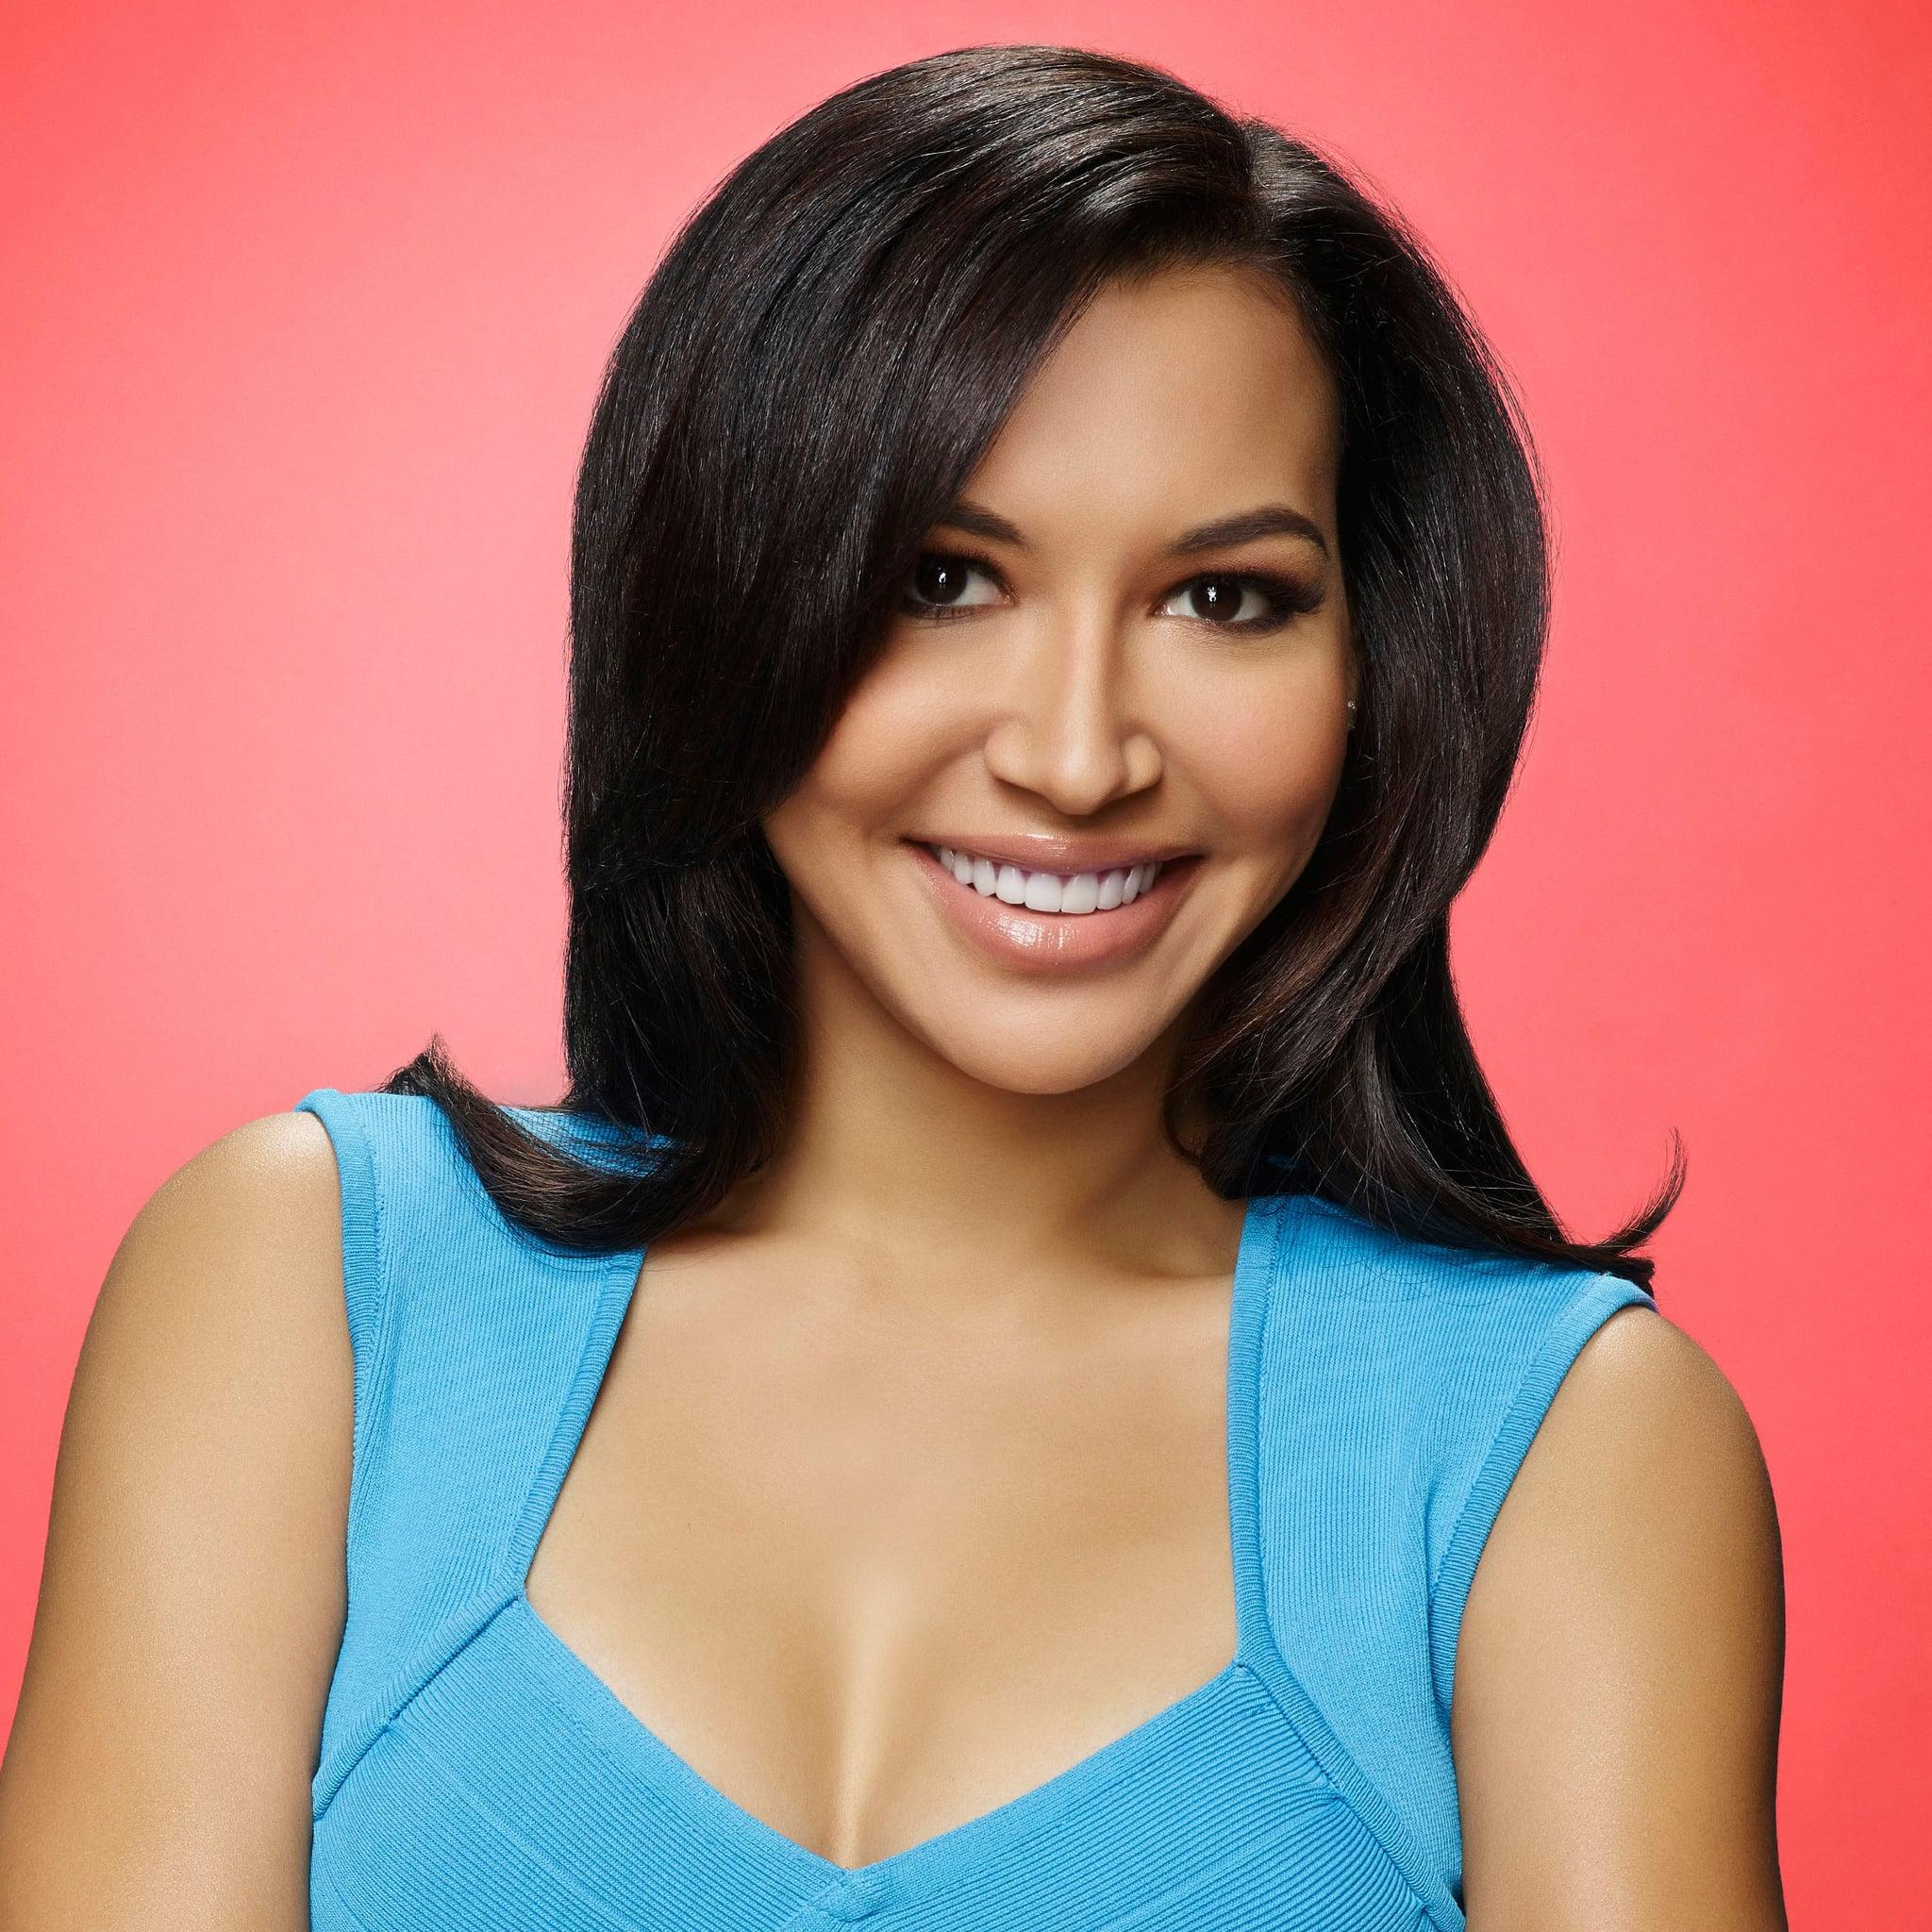 The Cast Of Glee Pay Tribute To Naya Rivera After Her Death You Deserved The World